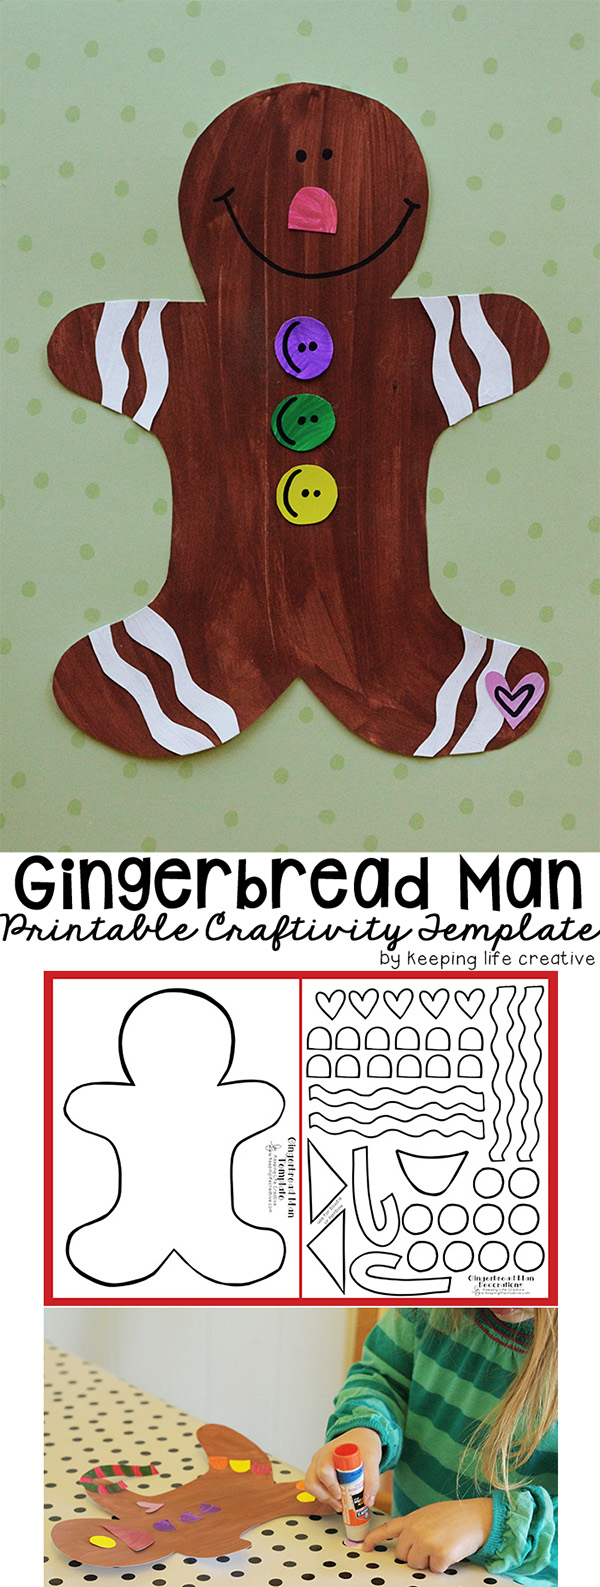 Printable gingerbread man craft keeping life creative for Craft projects for men